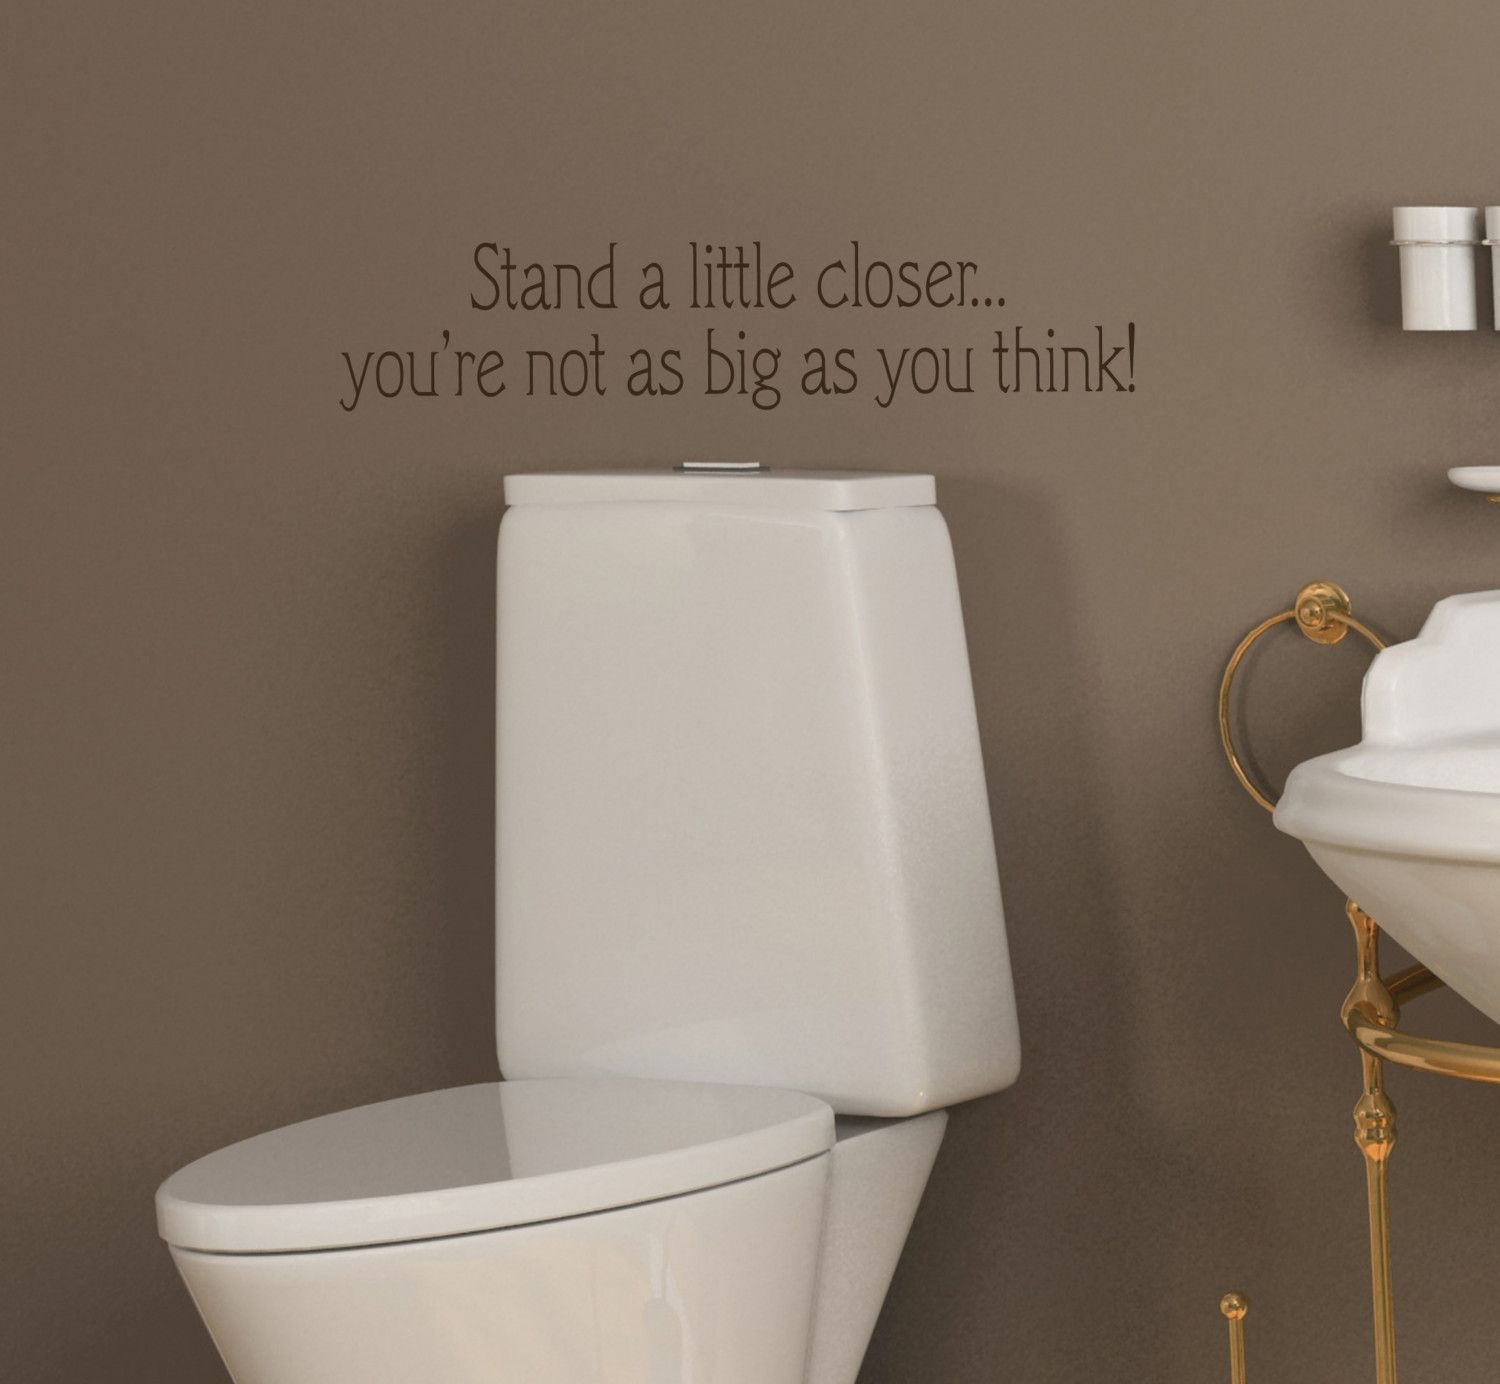 X Funny Bathroom Toilet Stand A Little Closer Vinyl Wall - Custom vinyl wall decals for bathroom